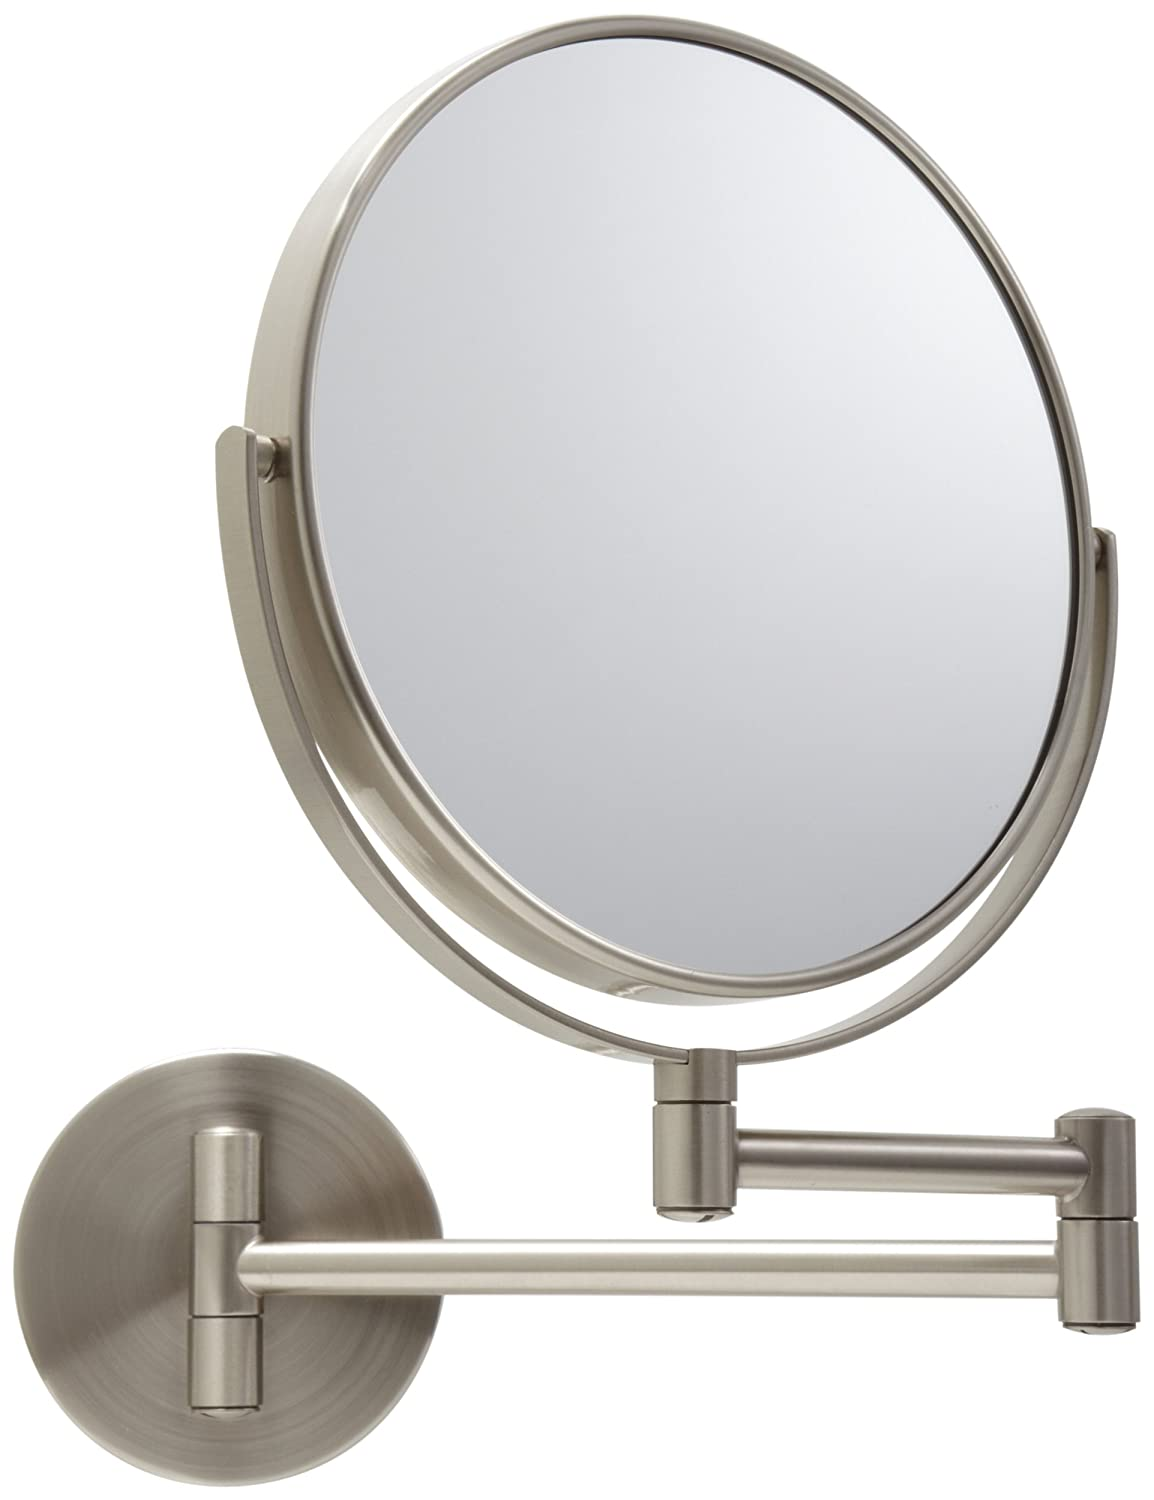 Jerdon Jp7510n 8 Inch Two Sided Swivel Wall Mount Mirror With 10x Mounted Wiring Diagram And 15x Magnification 135 Extension Nickel Finish Beauty